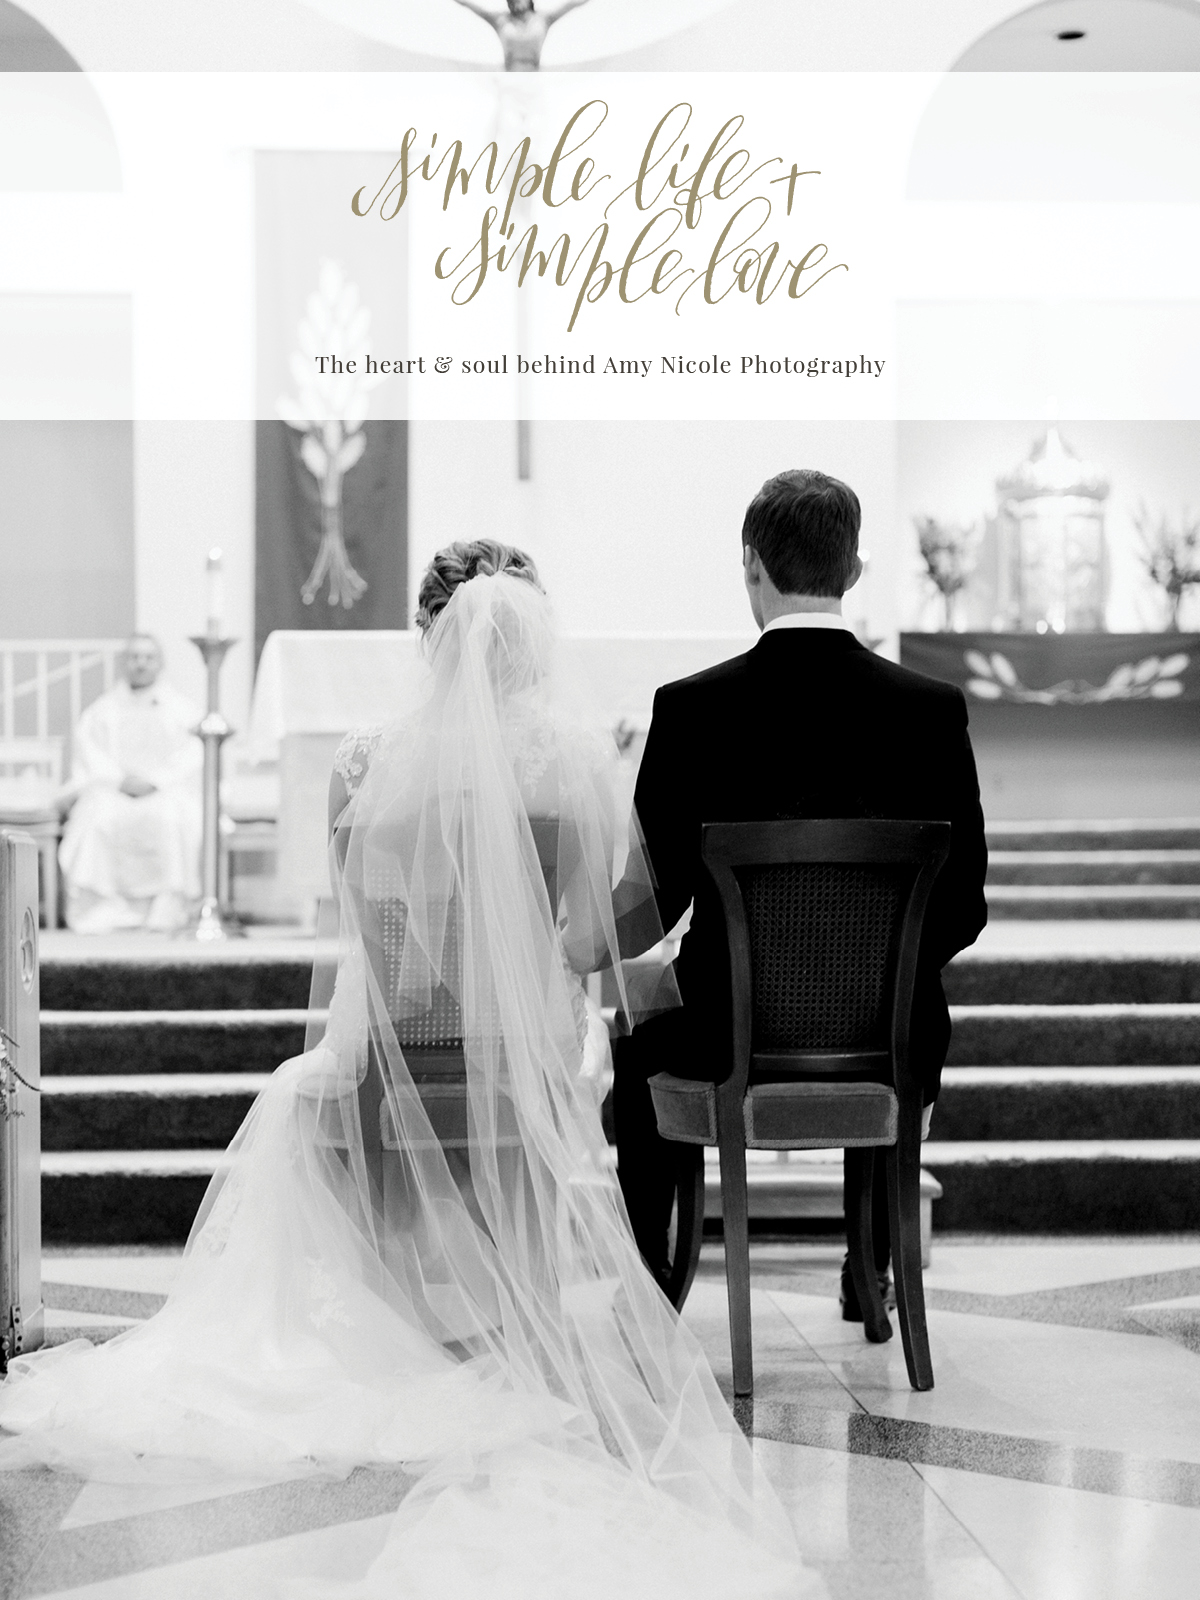 2-SimpleLifeSimpleLove-Authenticweddingphotographer